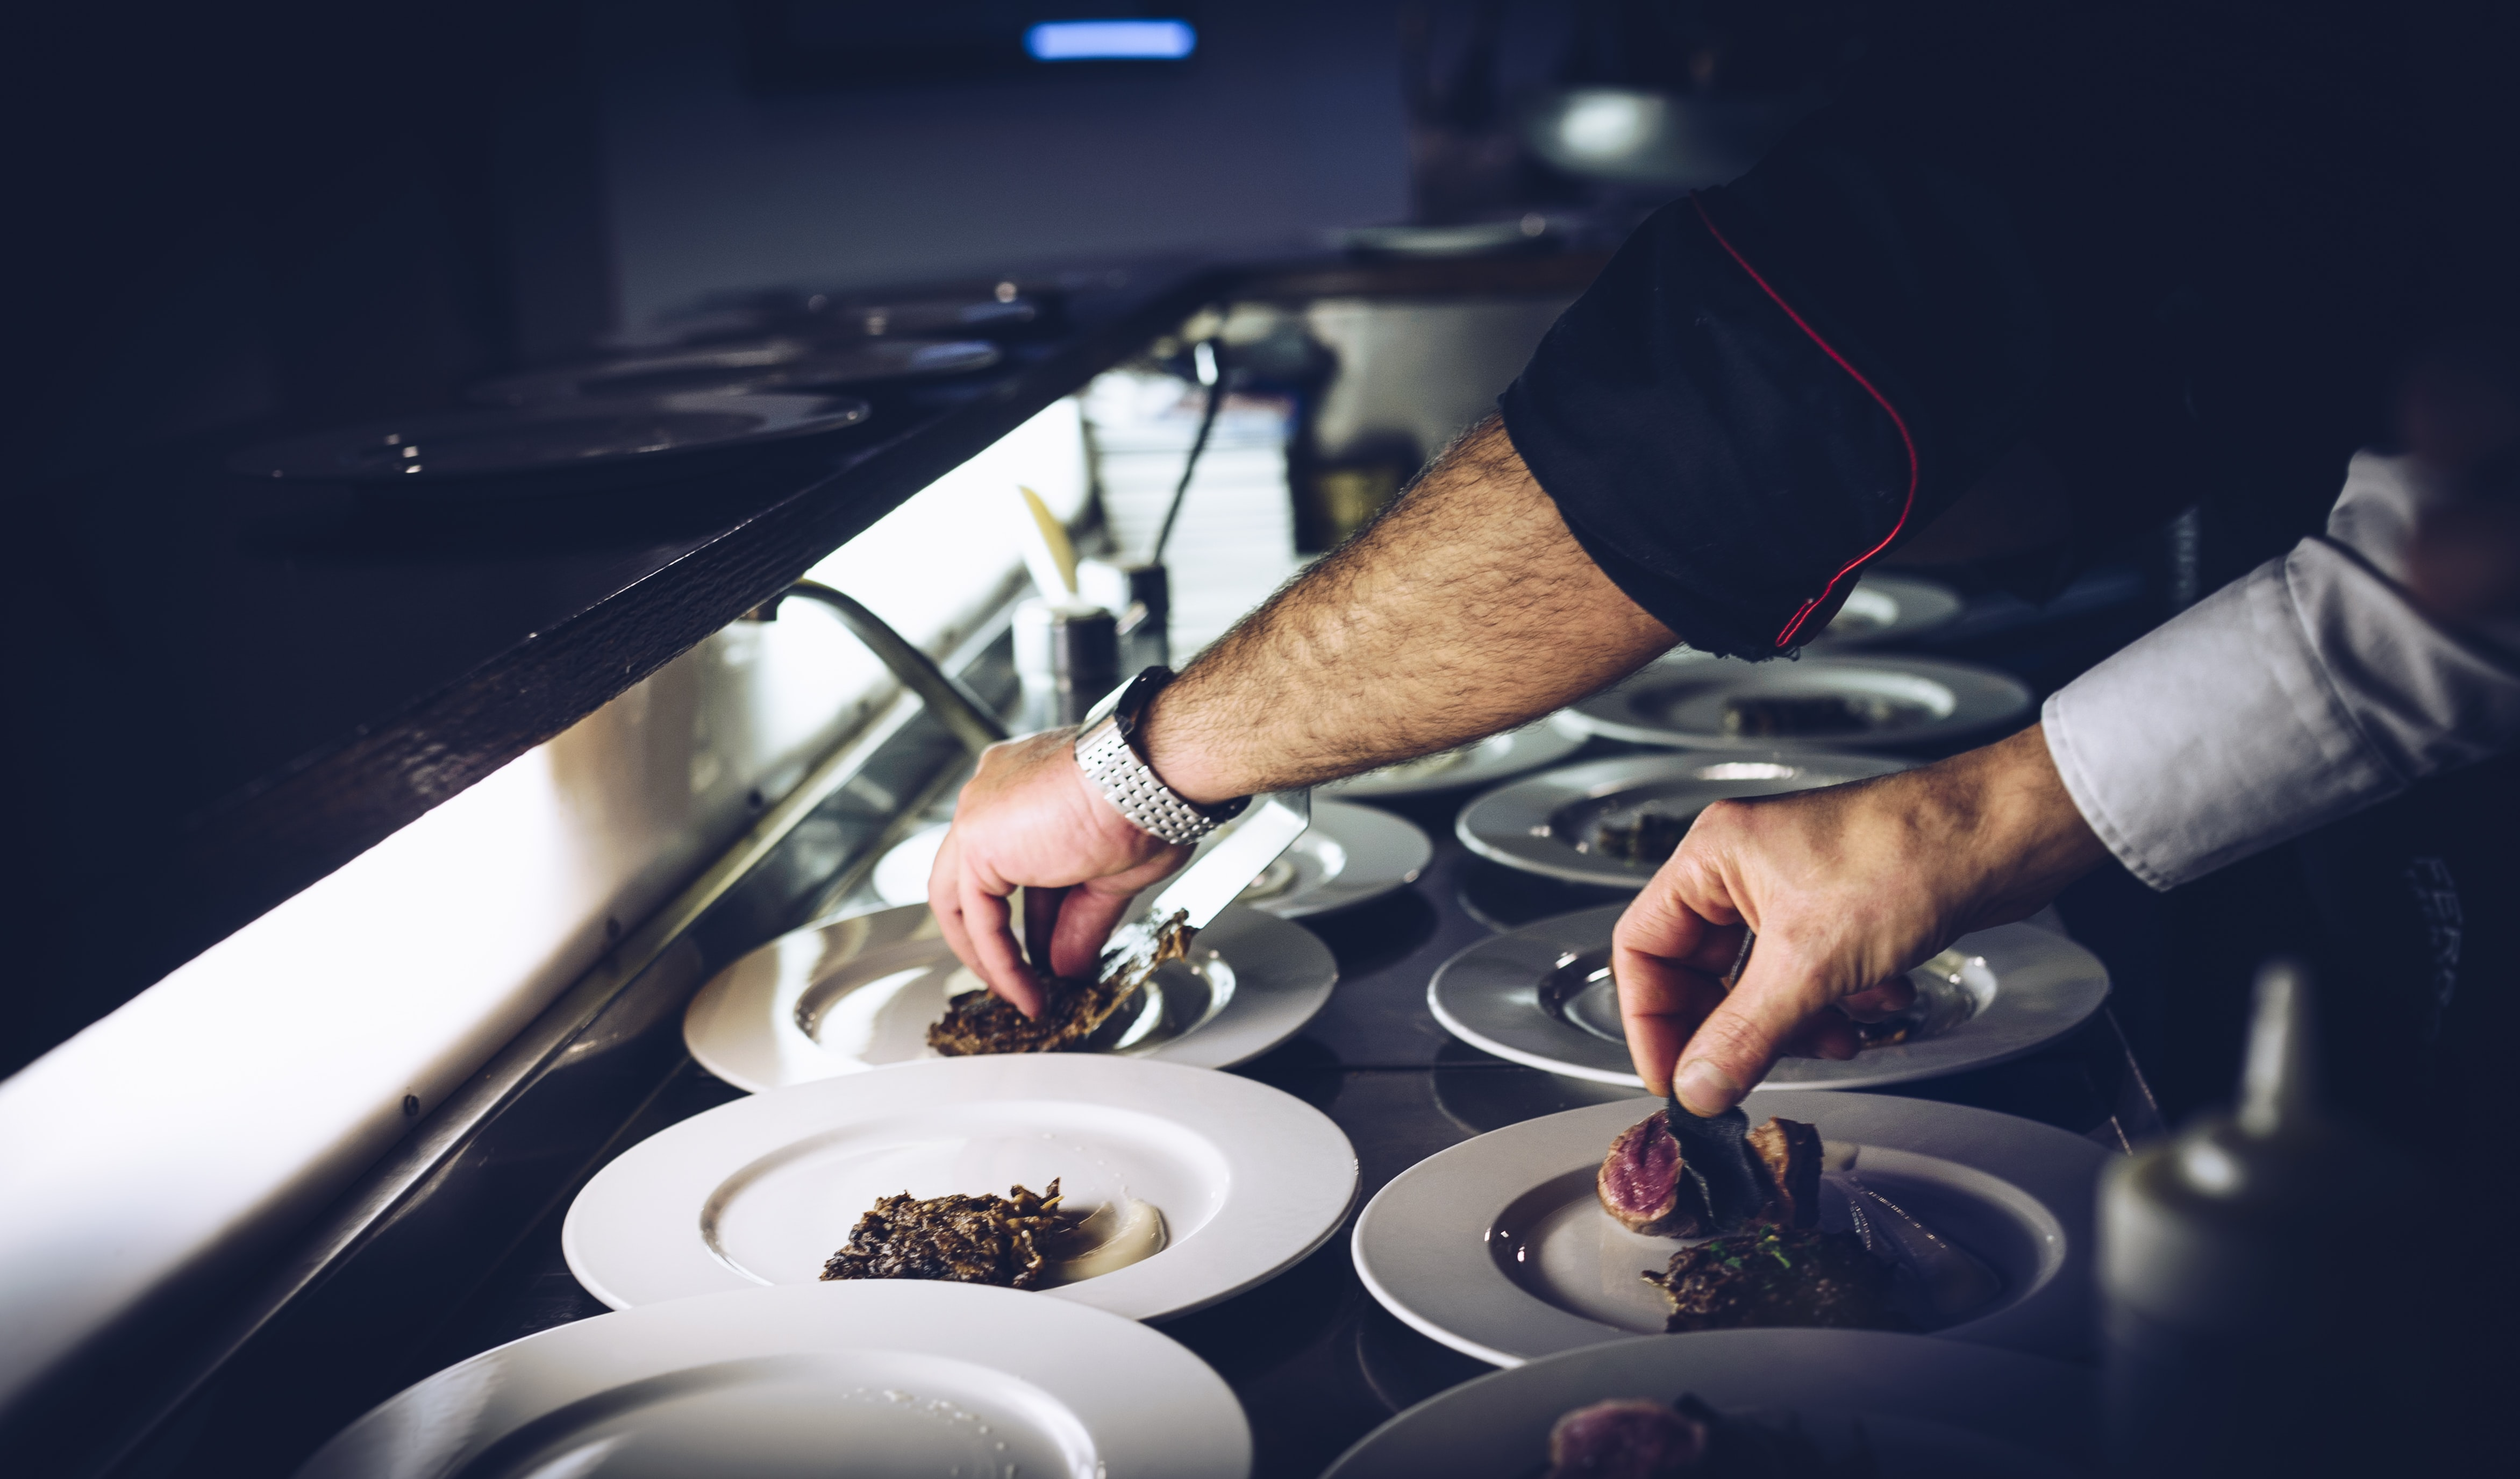 Chef and sous chef prepare gourmet meals in the kitchen